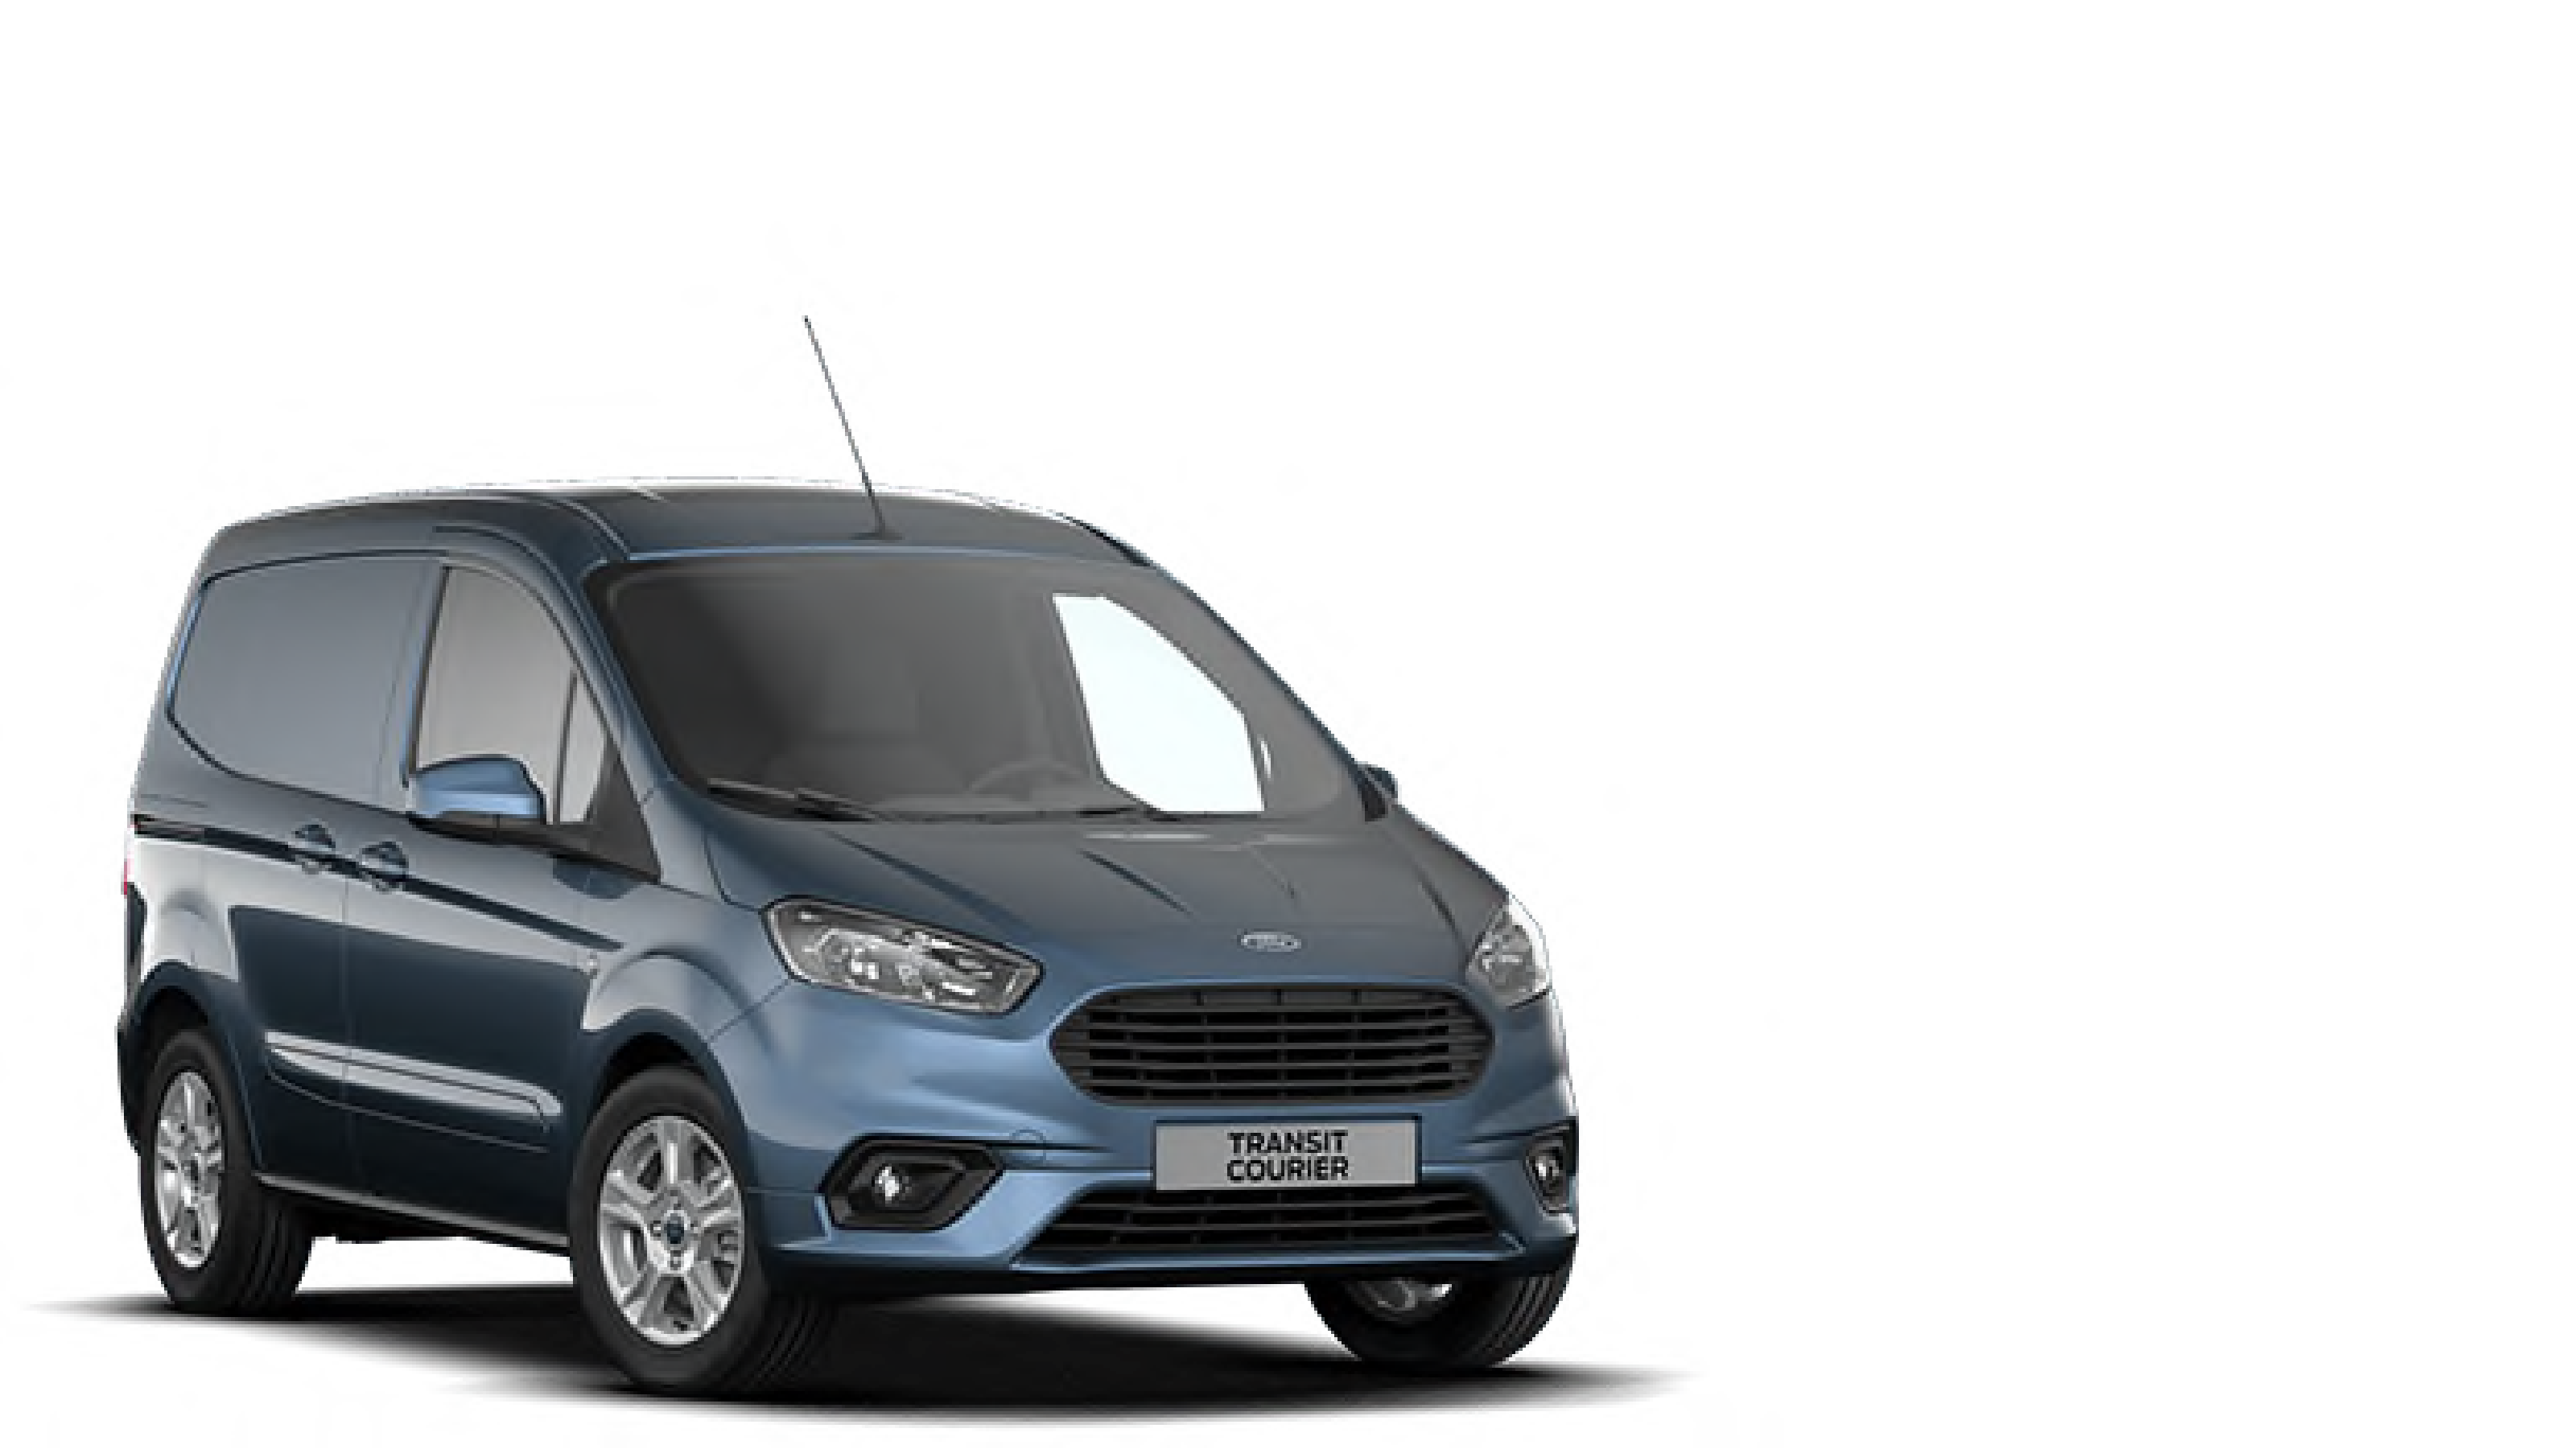 Ford Transit Courier tegel | Ford Poll